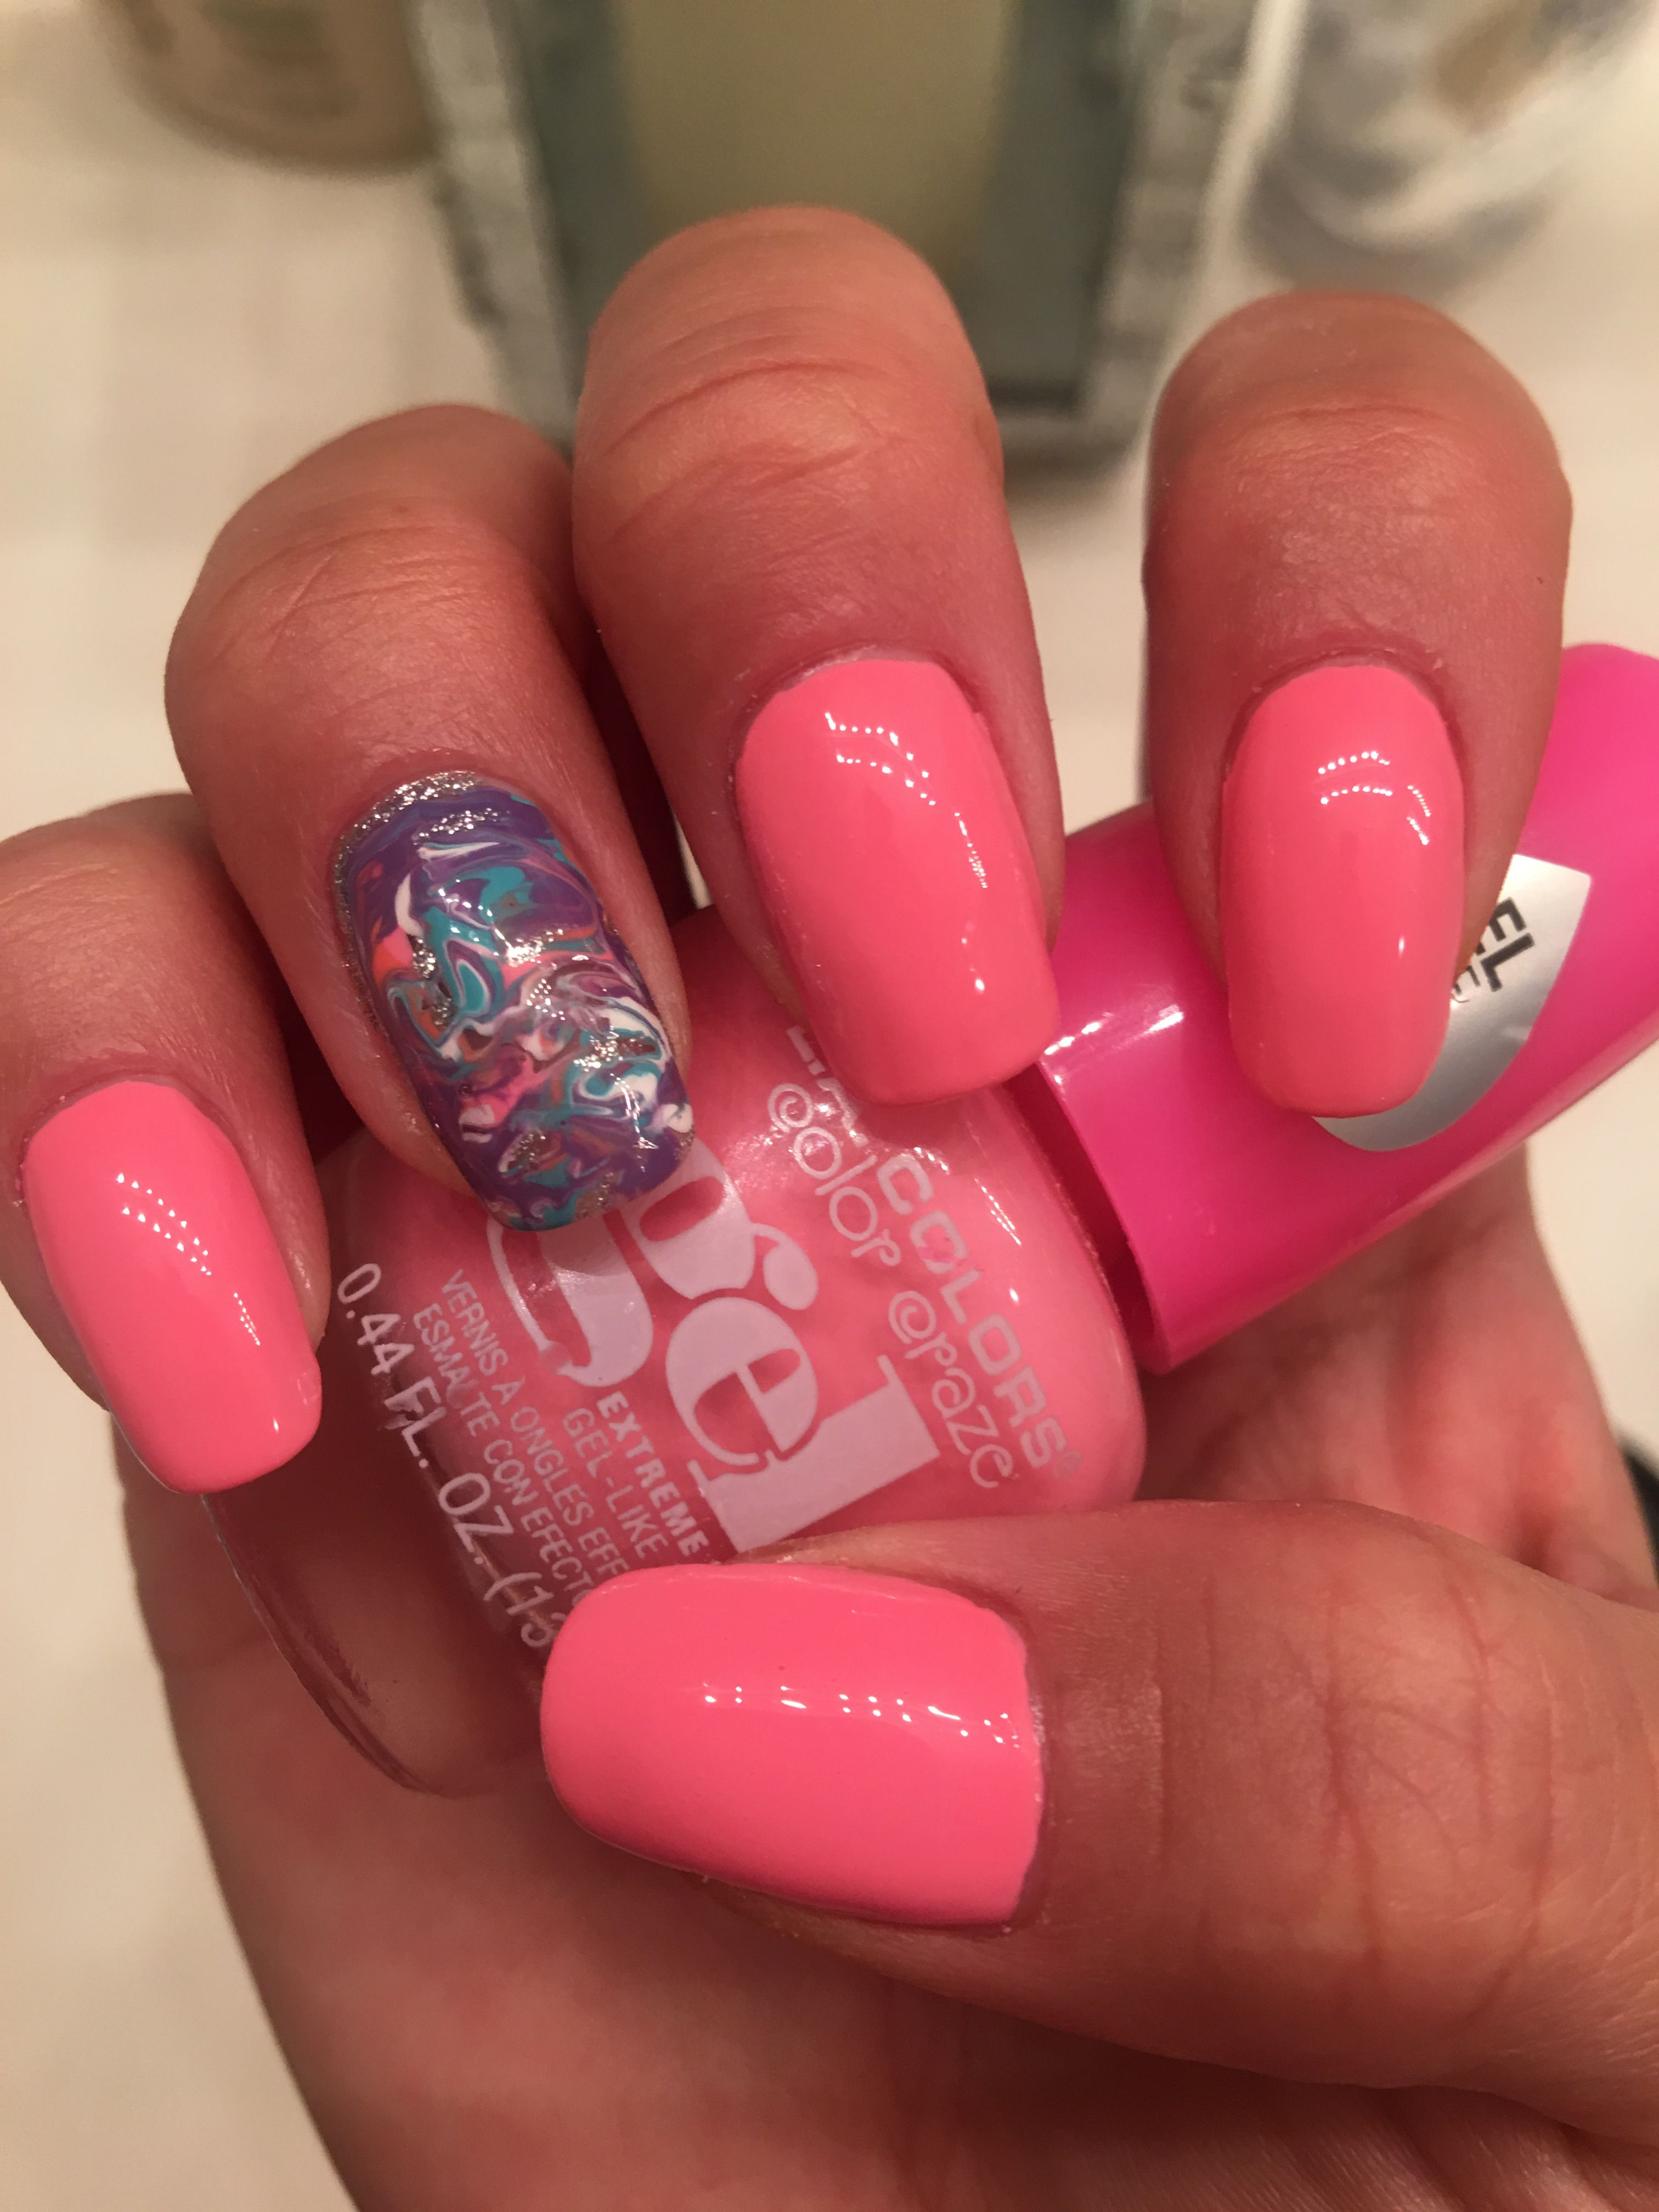 La Colors Gel Polish In The Hot Pink Color Posh Cute Nail Designs